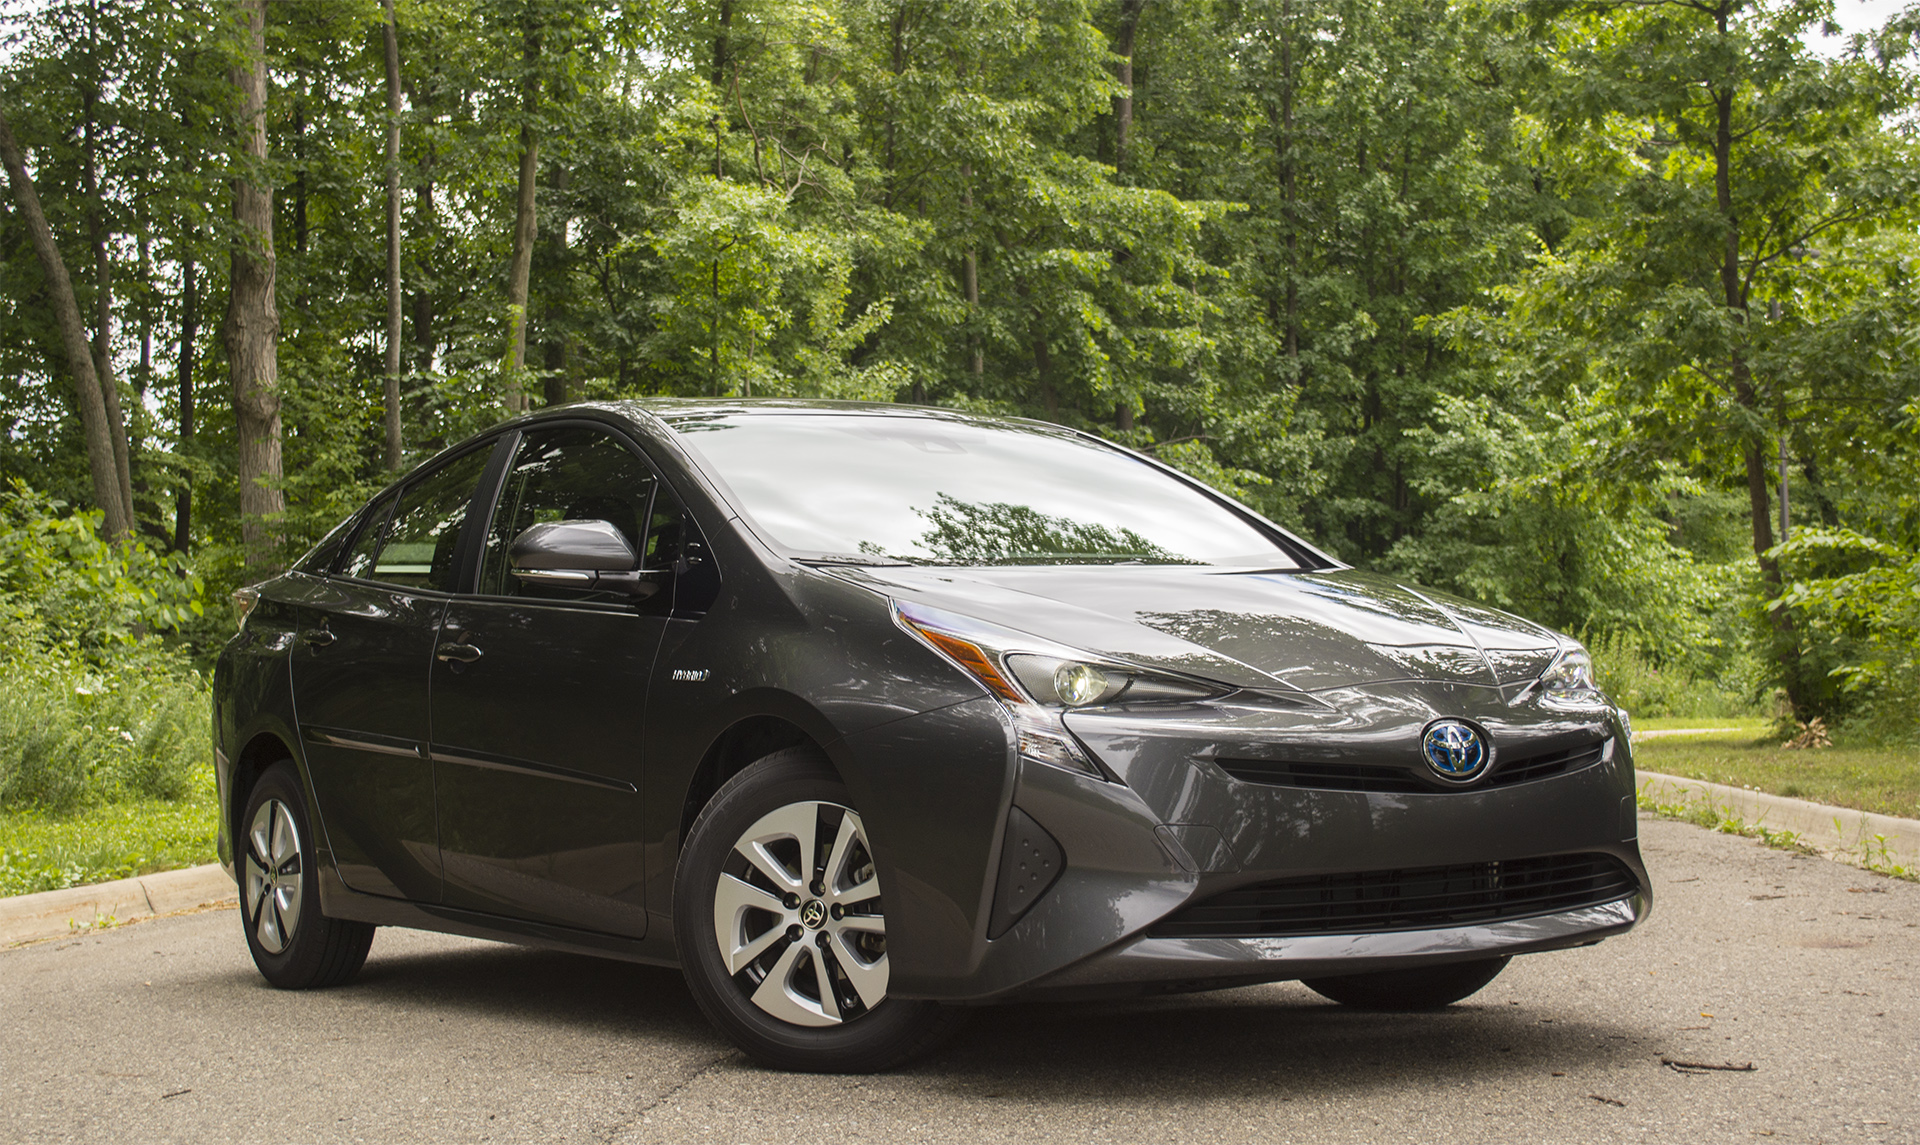 2016 toyota prius. Black Bedroom Furniture Sets. Home Design Ideas